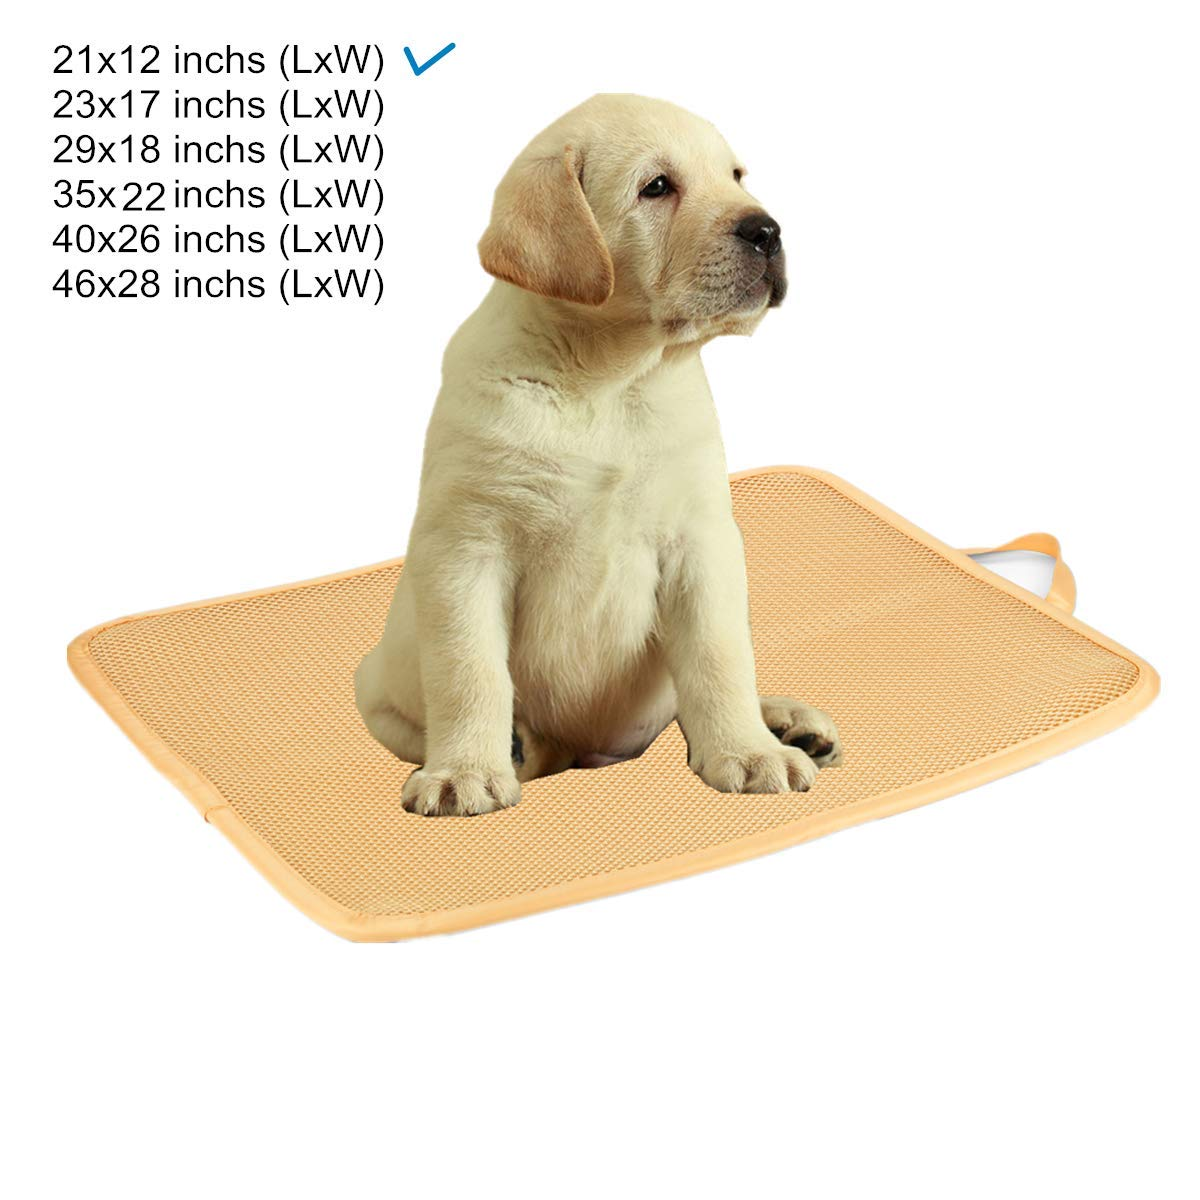 Kimi Homes Kennel Pad - Easy Cleaning Kennel Bed, Quick Drying Kennel Mat with Mesh Technology, Perfect Four Season Functions for Dogs, Cats and More